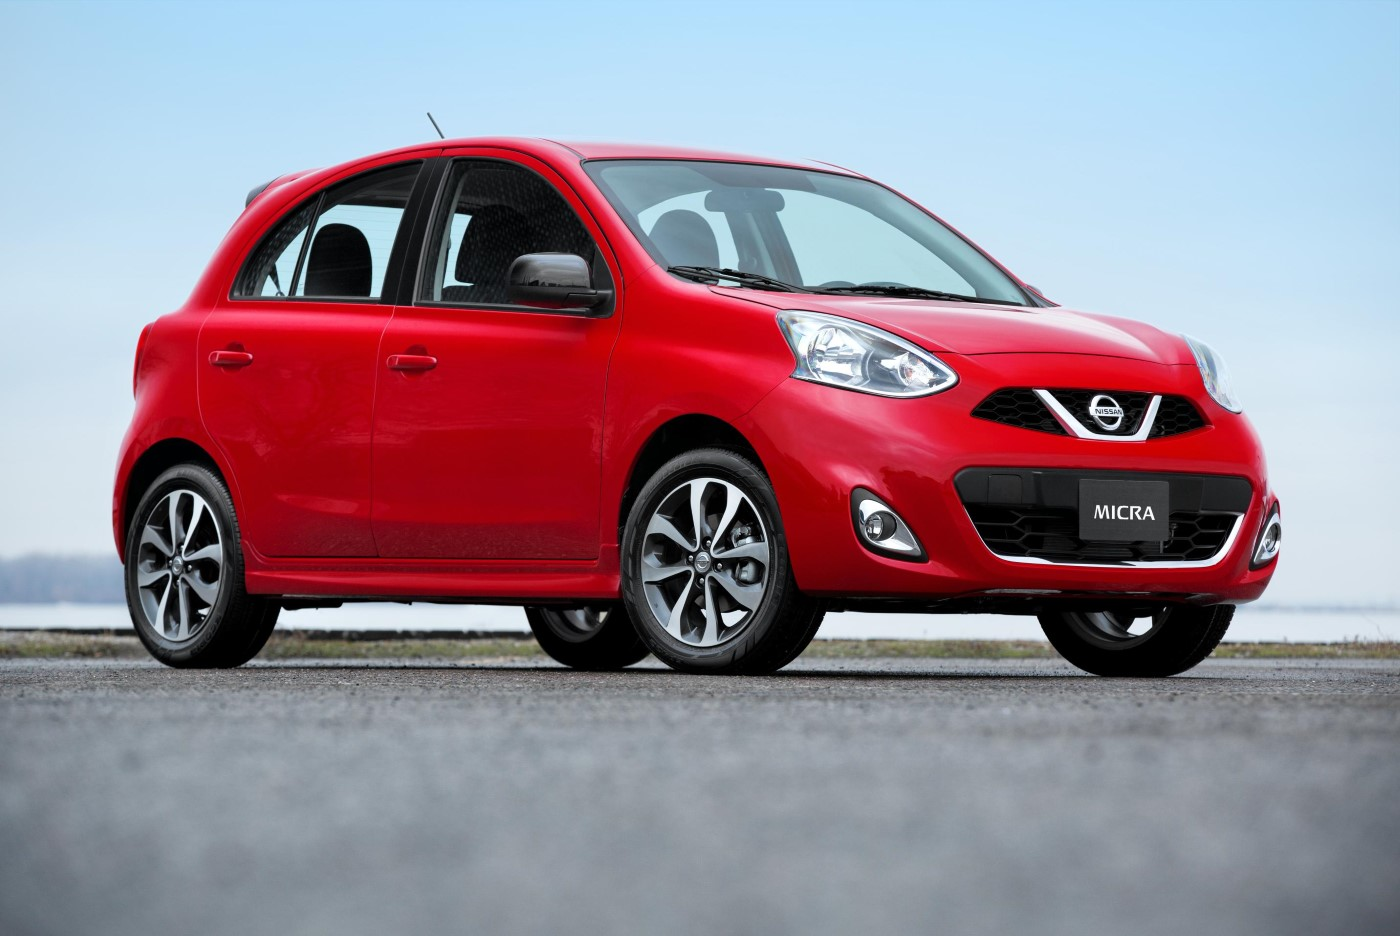 Best Gas For BMW >> 2015 Nissan Micra: $10K Minicar For Canada--Paid For By Smart?